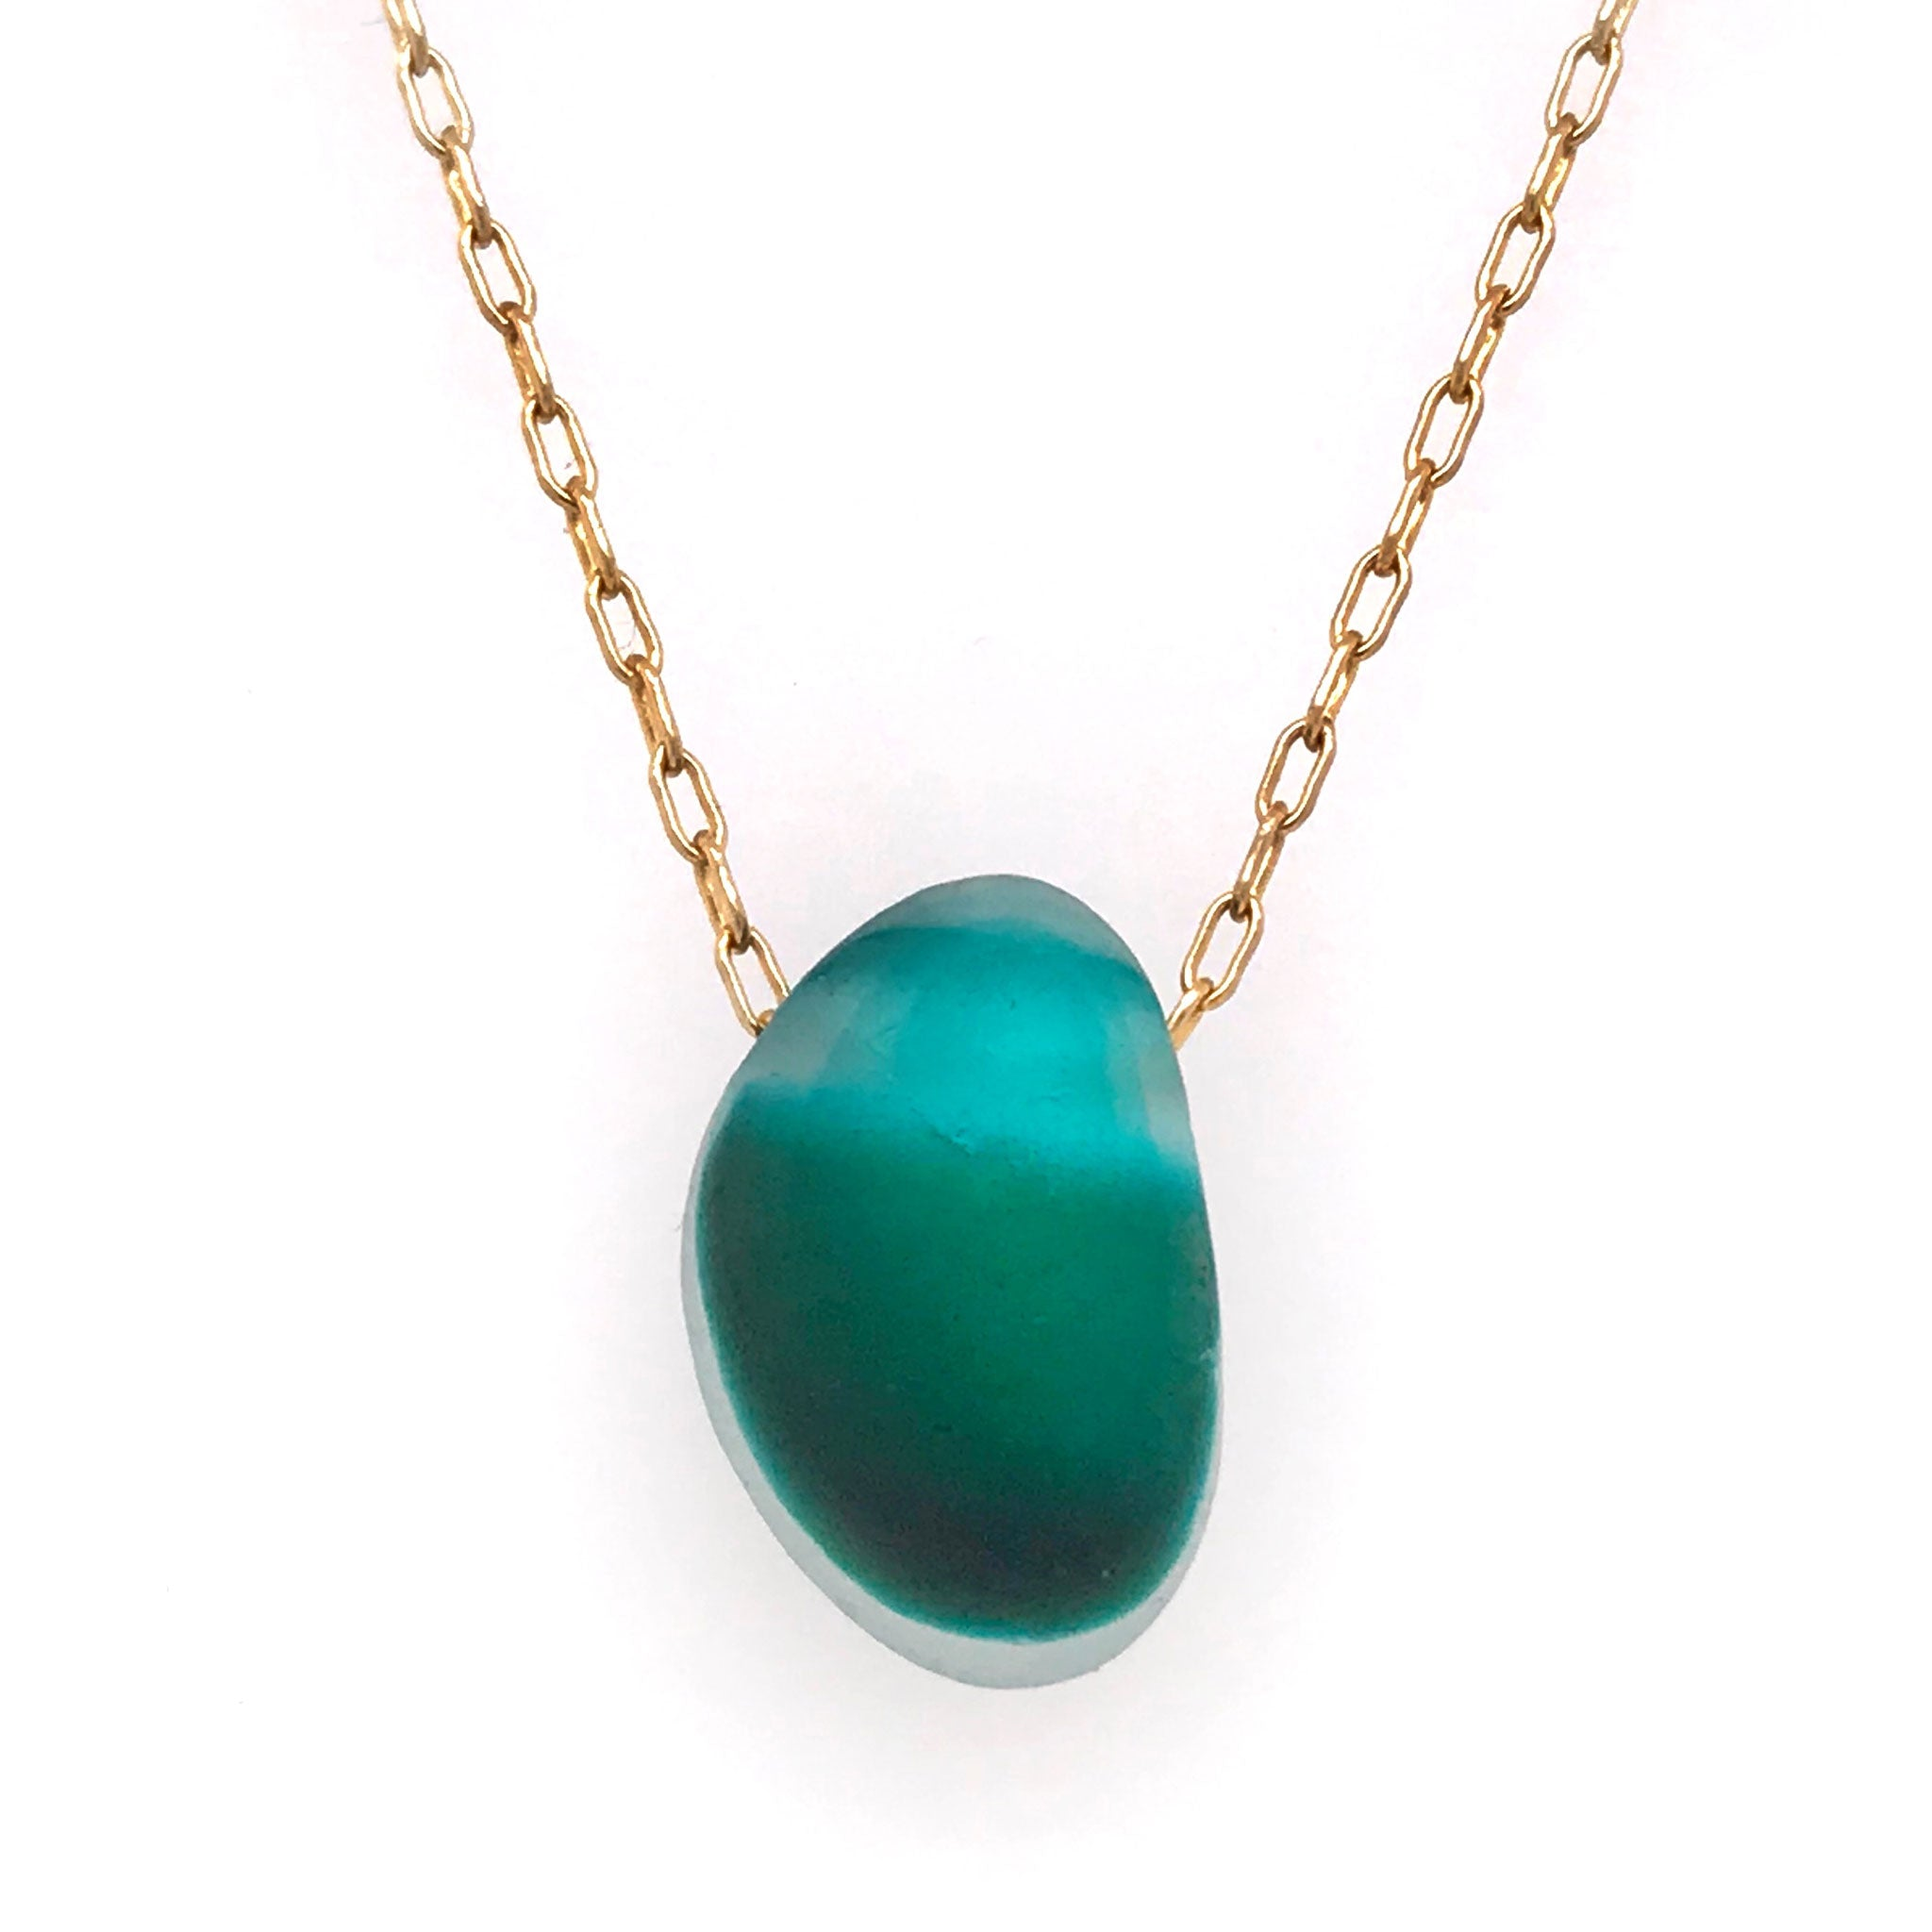 teal and aqua multi-coloured seaglass necklace on gold chain Kriket Broadhurst jewelry